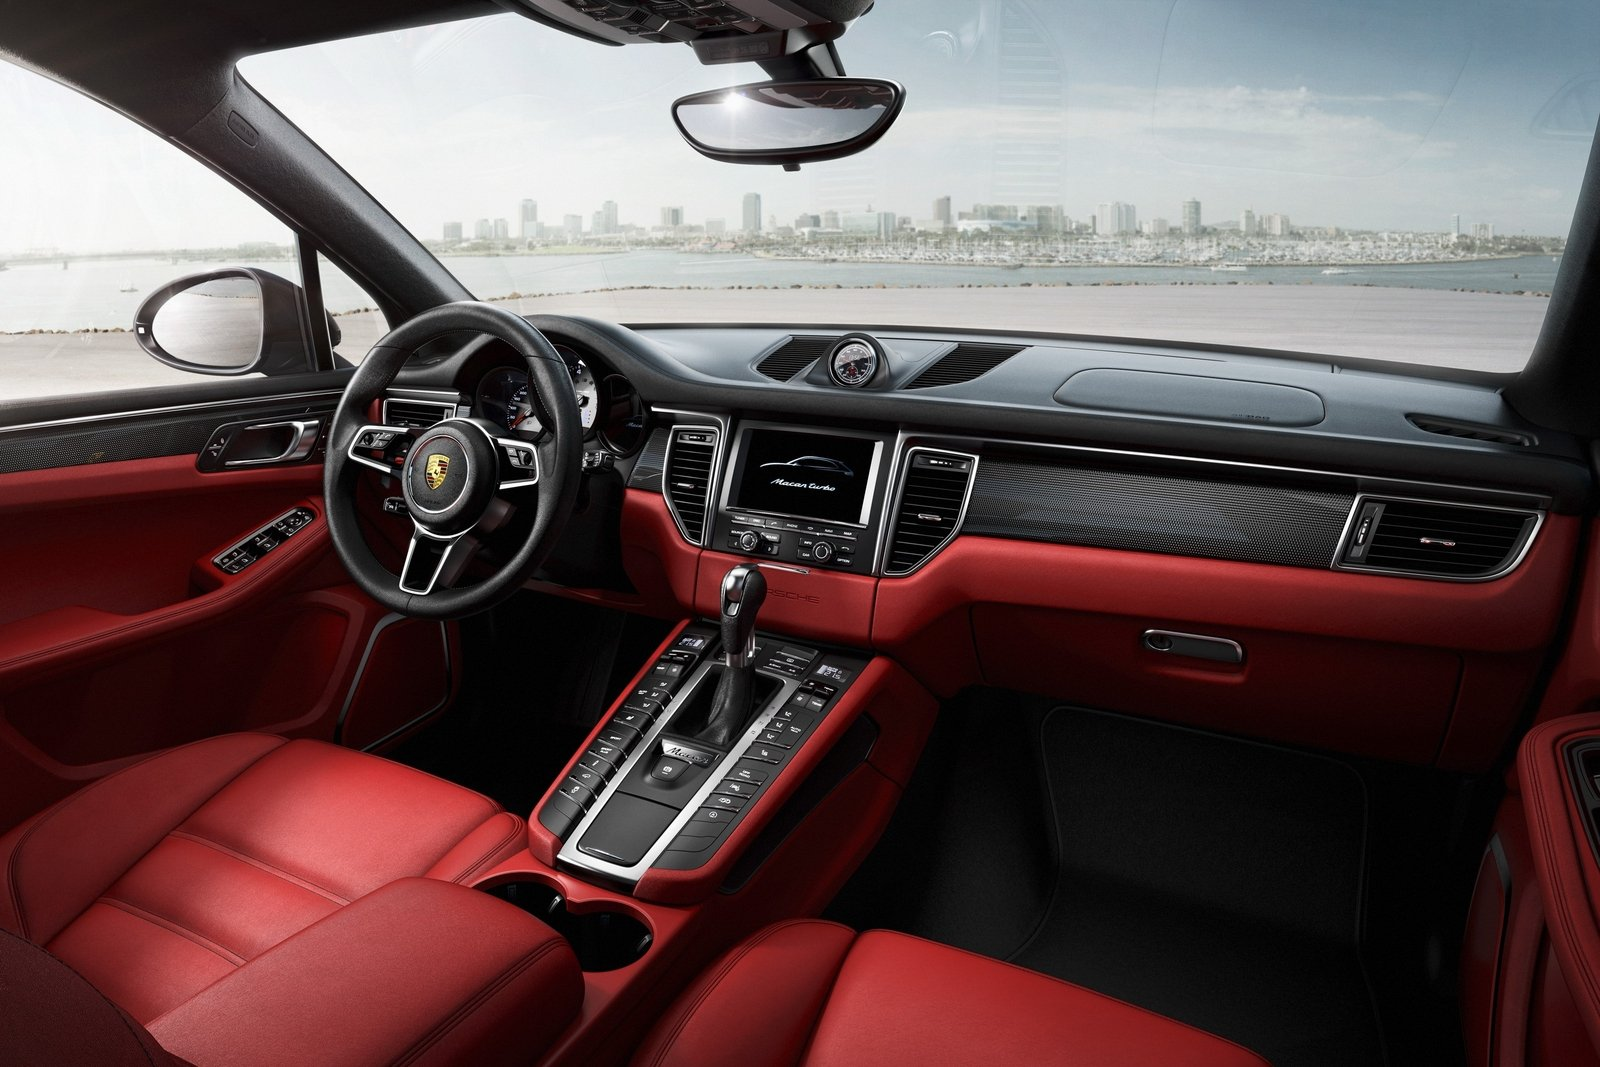 2018 Porsche Macan Price Interior Engine Specs Review